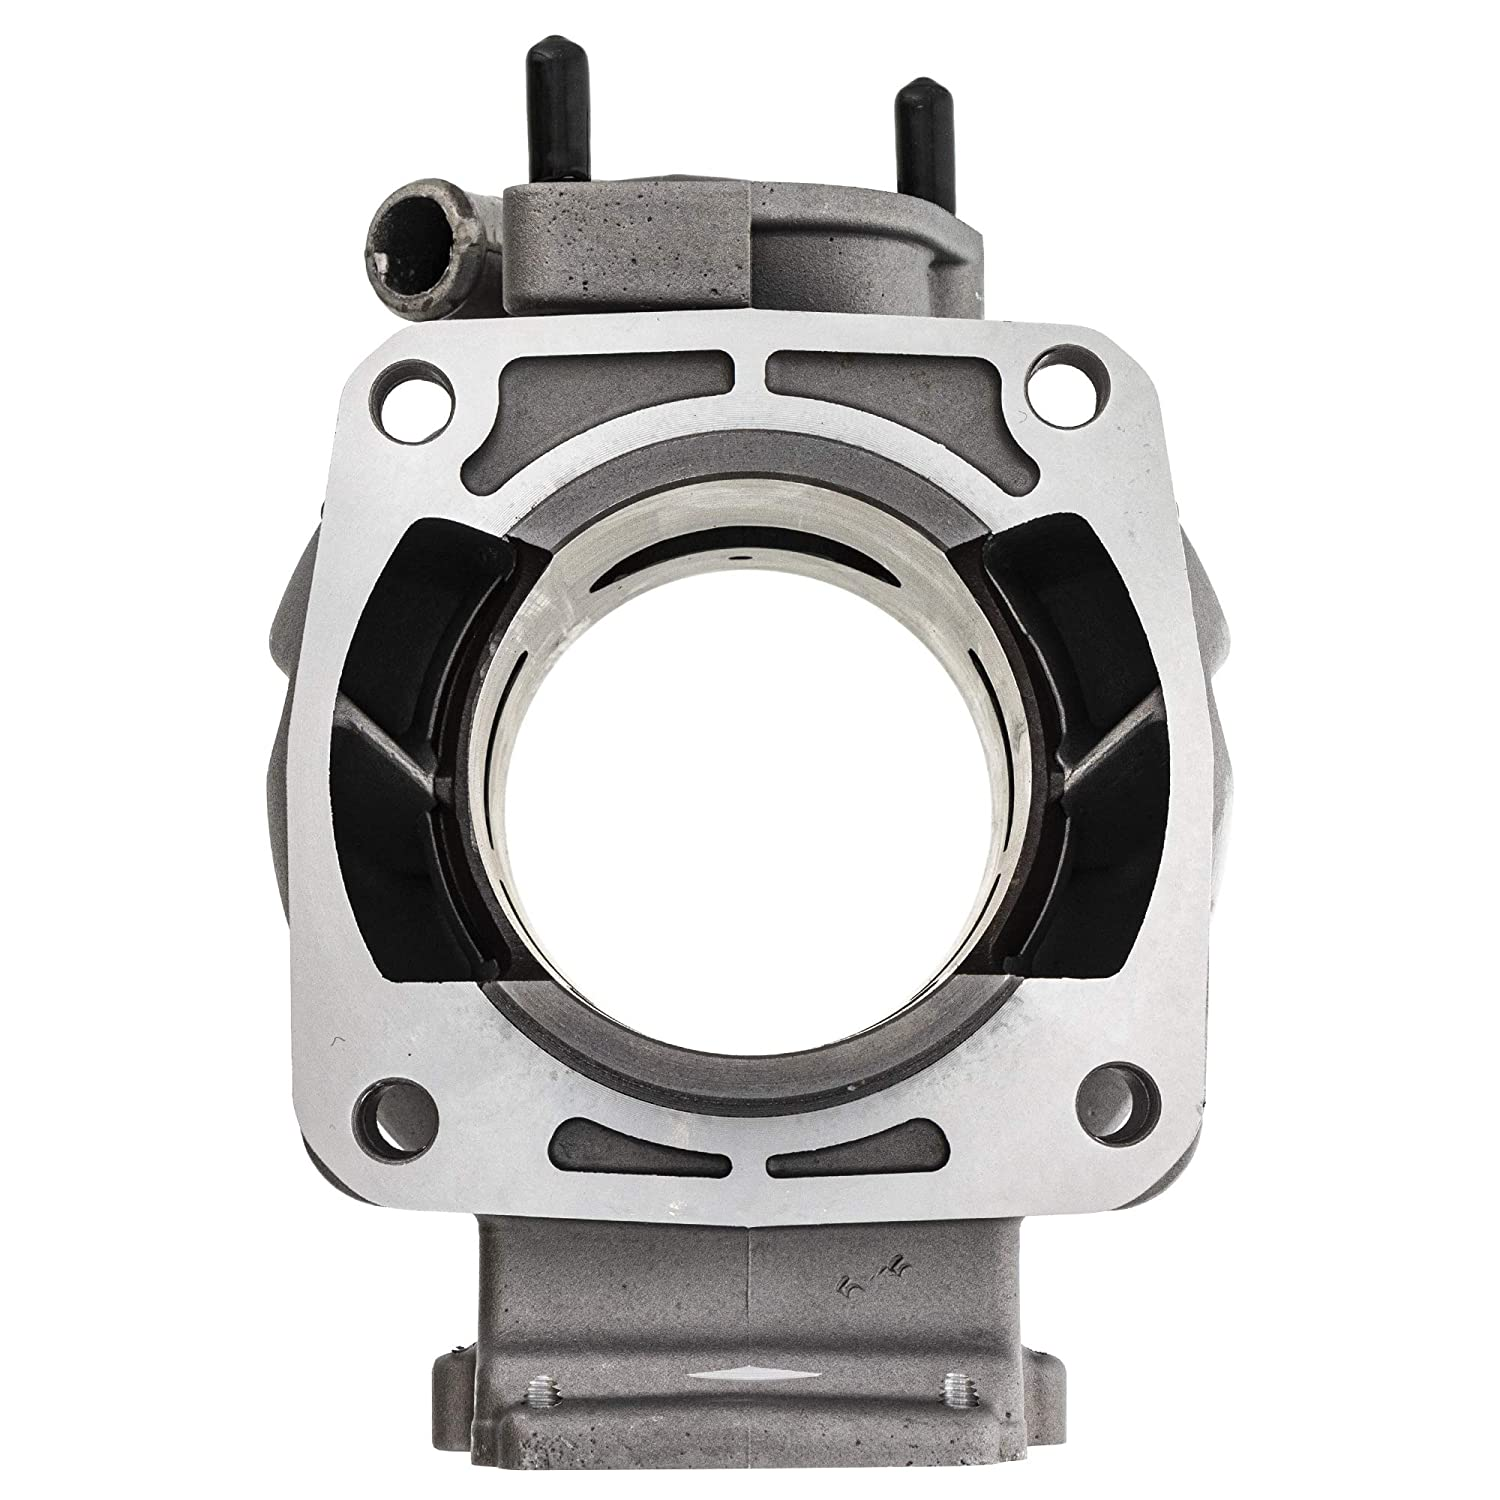 Parts NICHE Engive Cylinder For Polaris 3086753 3084728 1994-2003 ...